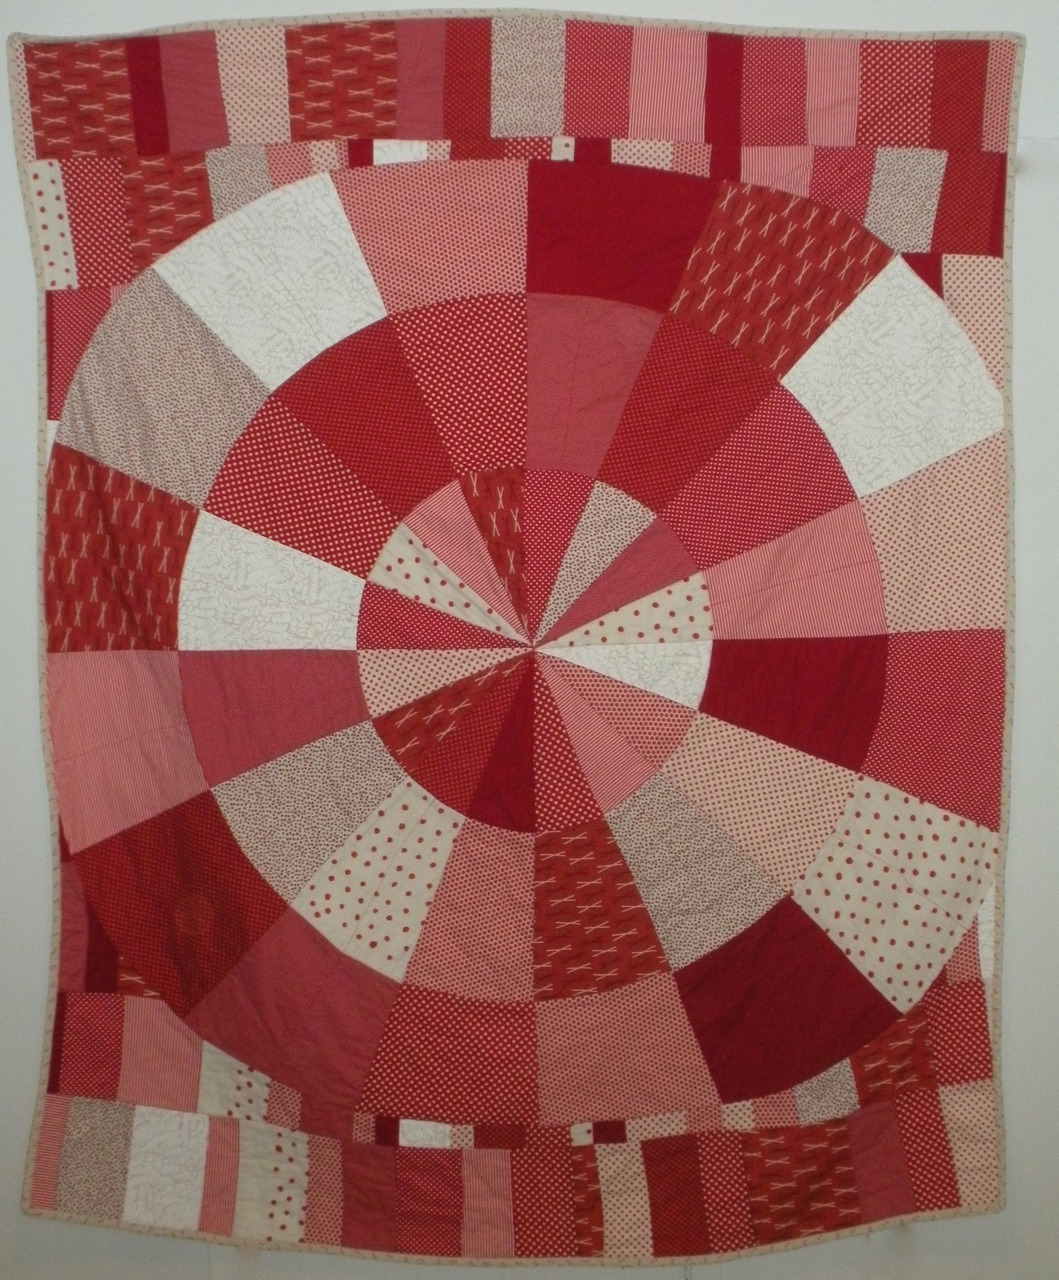 "Back in March I had the pleasure of seeing Infinite Variety: Three Centuries of Red and White Quilts at the Armory. It inspired complete awe in me. So when it came time to make a quilt for a very special red-haired lady, I knew exactly what to make. I wanted to make something optical like many of the quilts in the show, but keep it very contemporary. I had a hard time giving it away! Approximately 70"" x 90"""